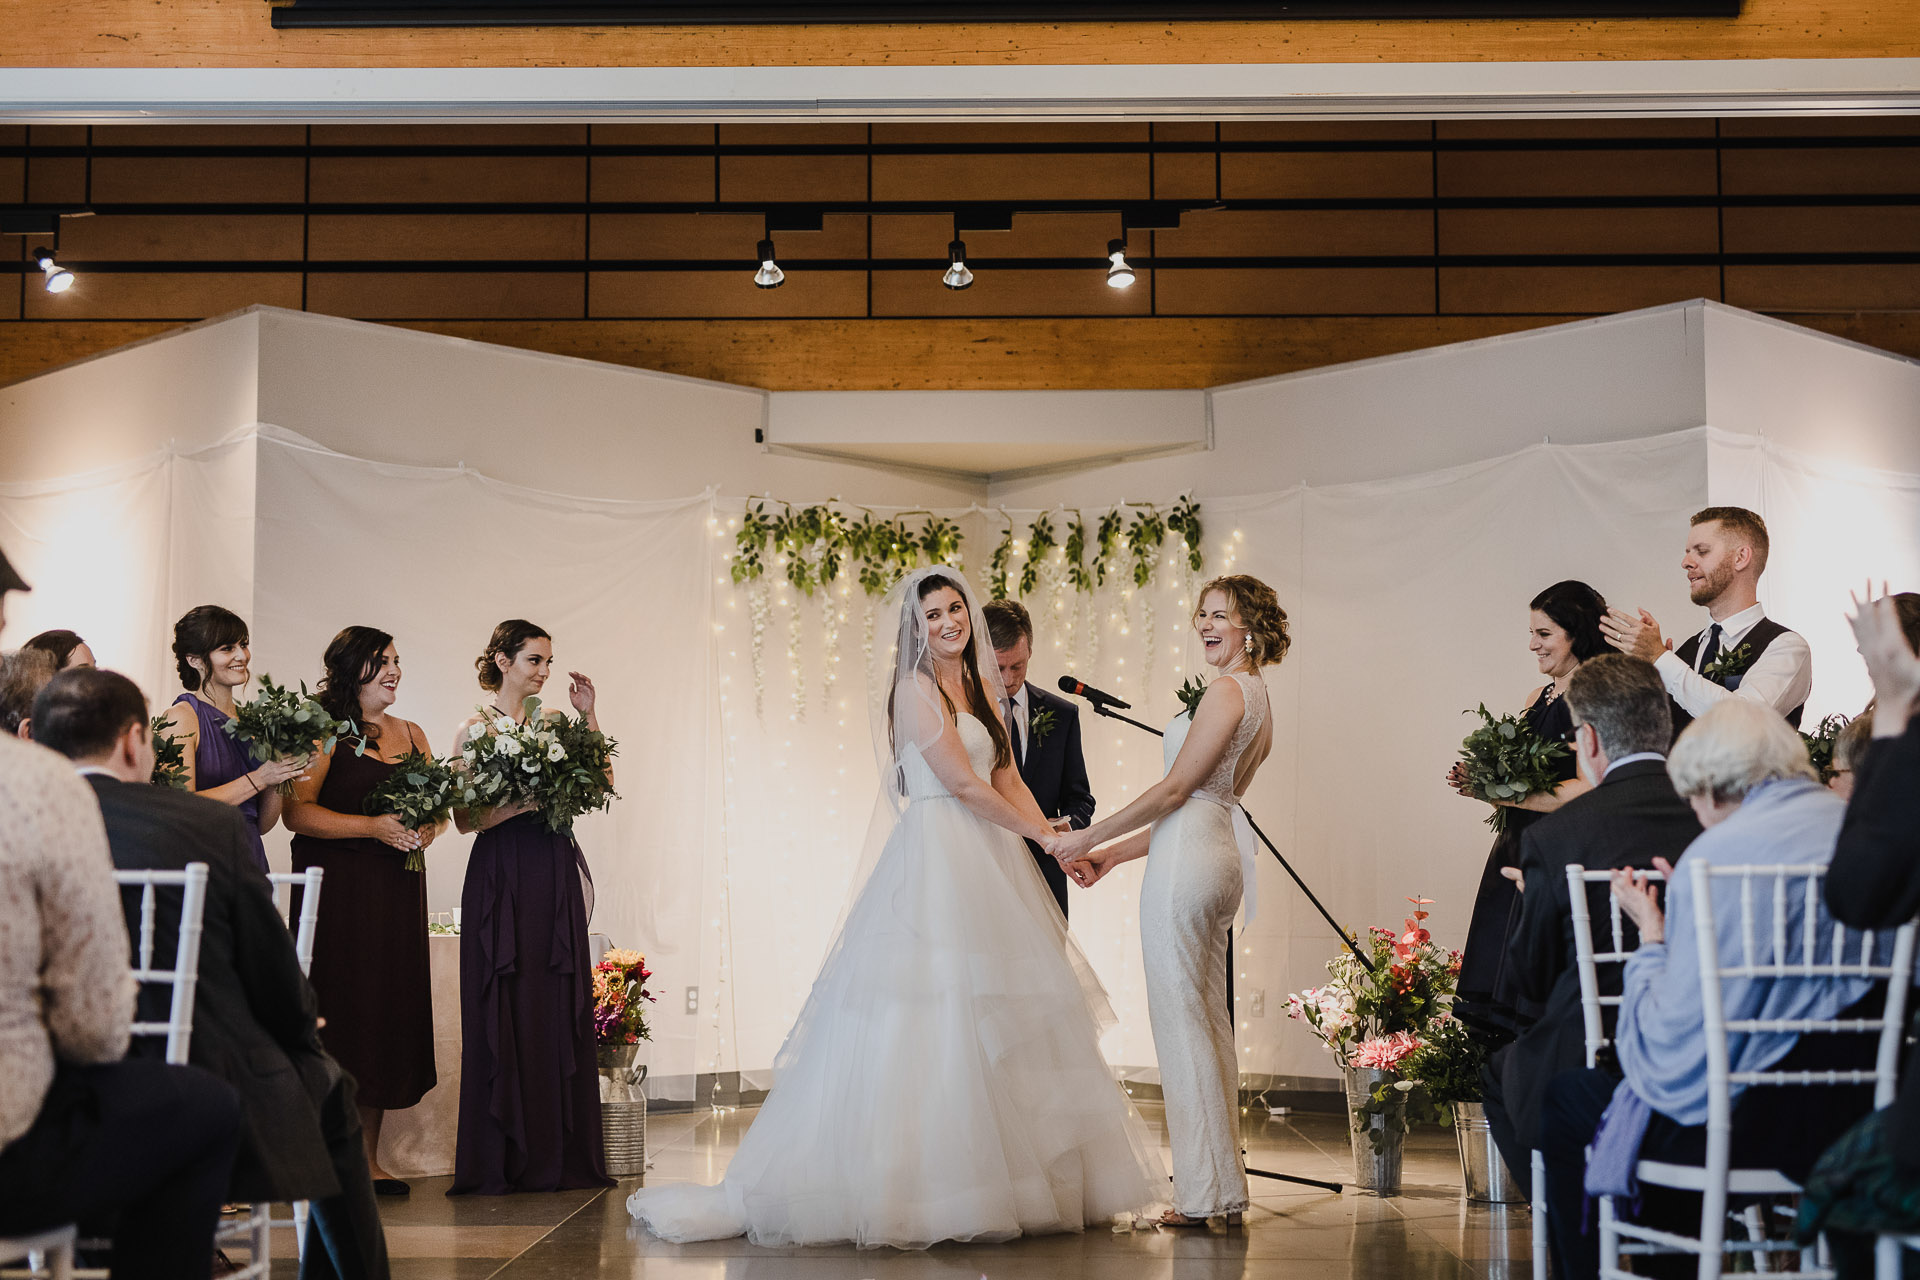 Balls Falls Conservation Area Wedding - laughs at the alter